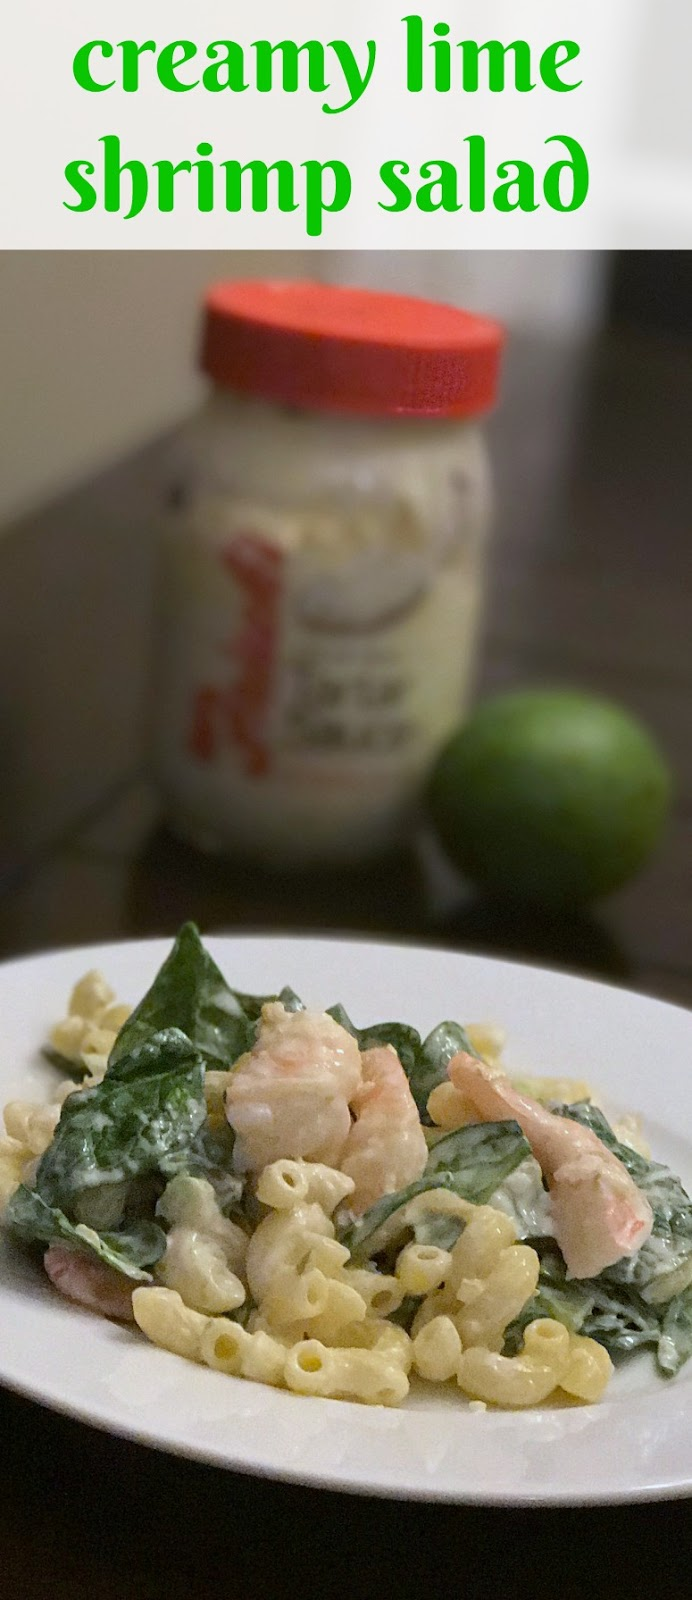 The Food Hussy!: Food Hussy Recipe: Creamy Lime Shrimp Salad